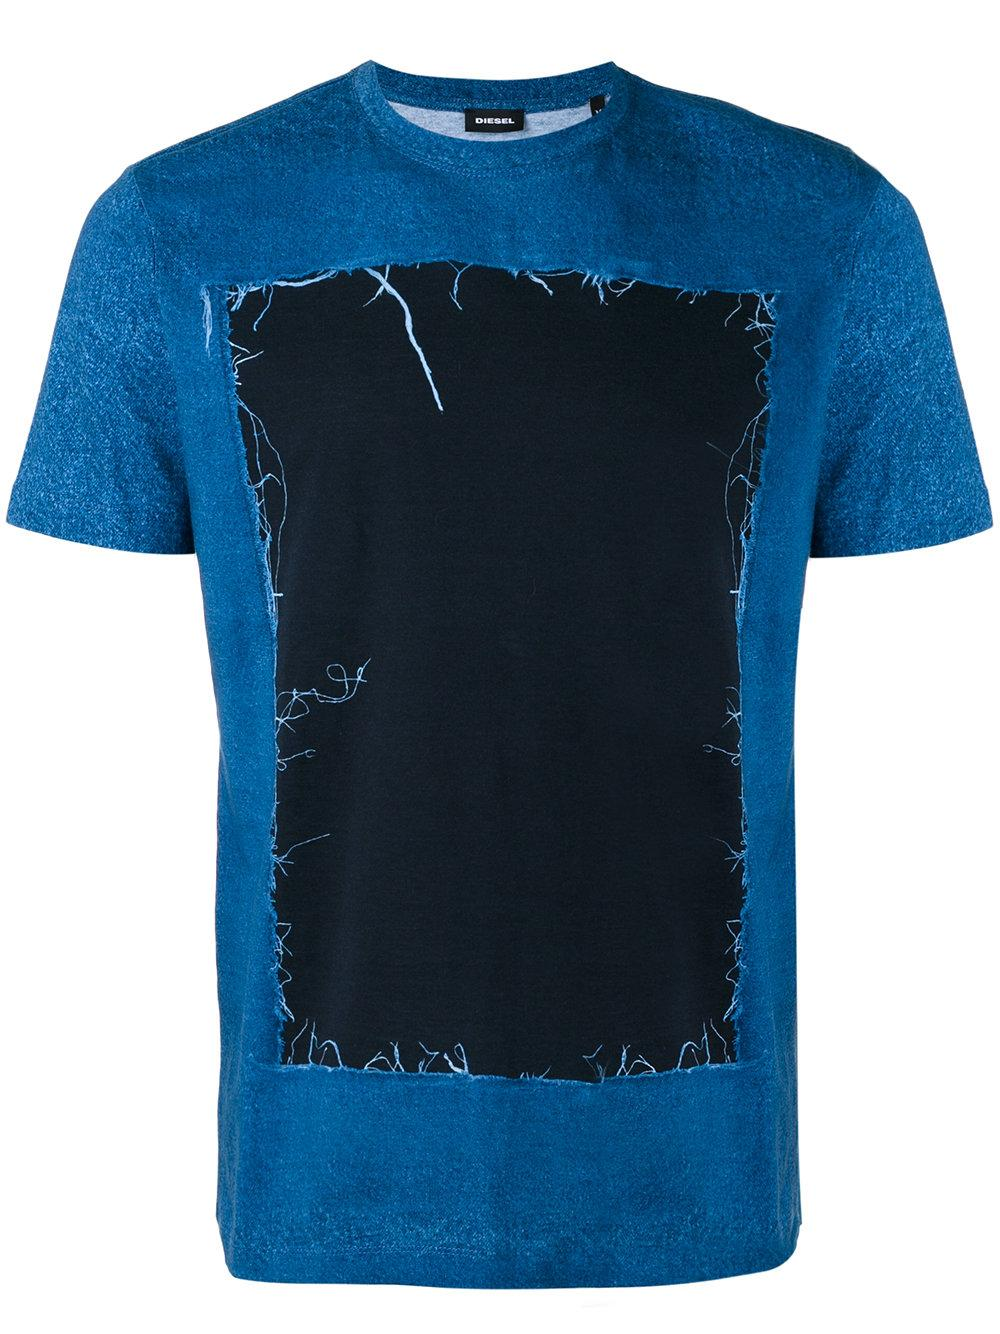 Diesel distressed detail t shirt in blue for men lyst for Custom t shirts distressed